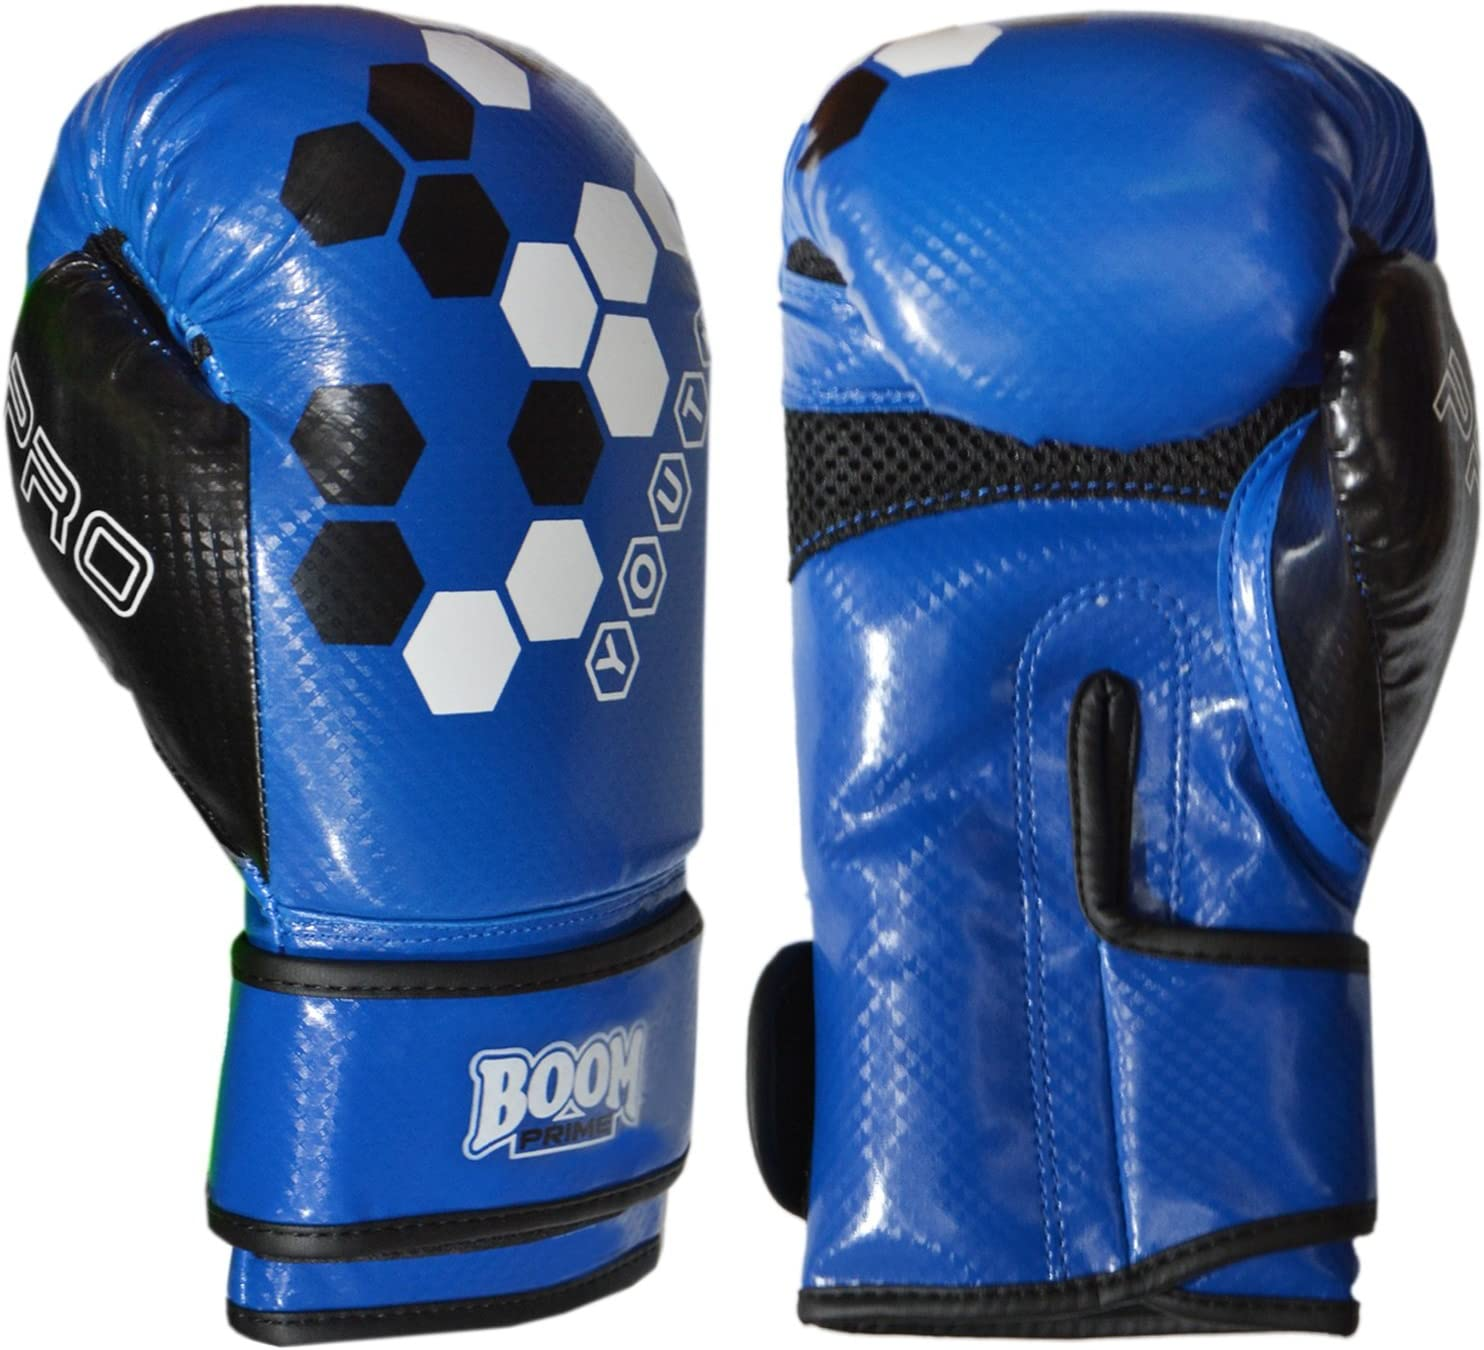 Kids Boxing Gloves Leather Junior Punch Bag MMA Mitts Muay Thai 4oz 8oz Boom Pro